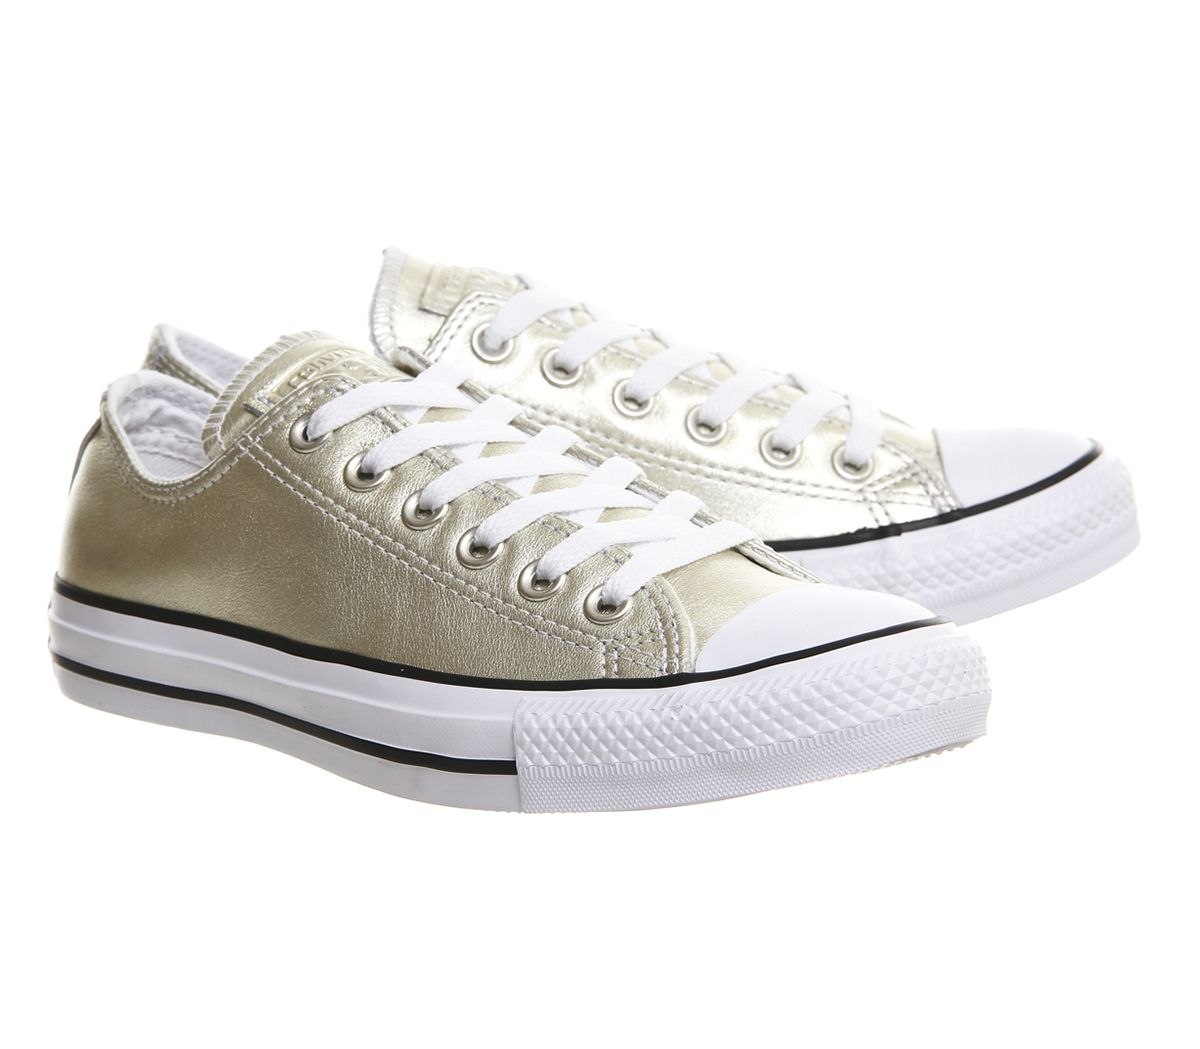 Converse Sneakers All Star Low Leather New Gold